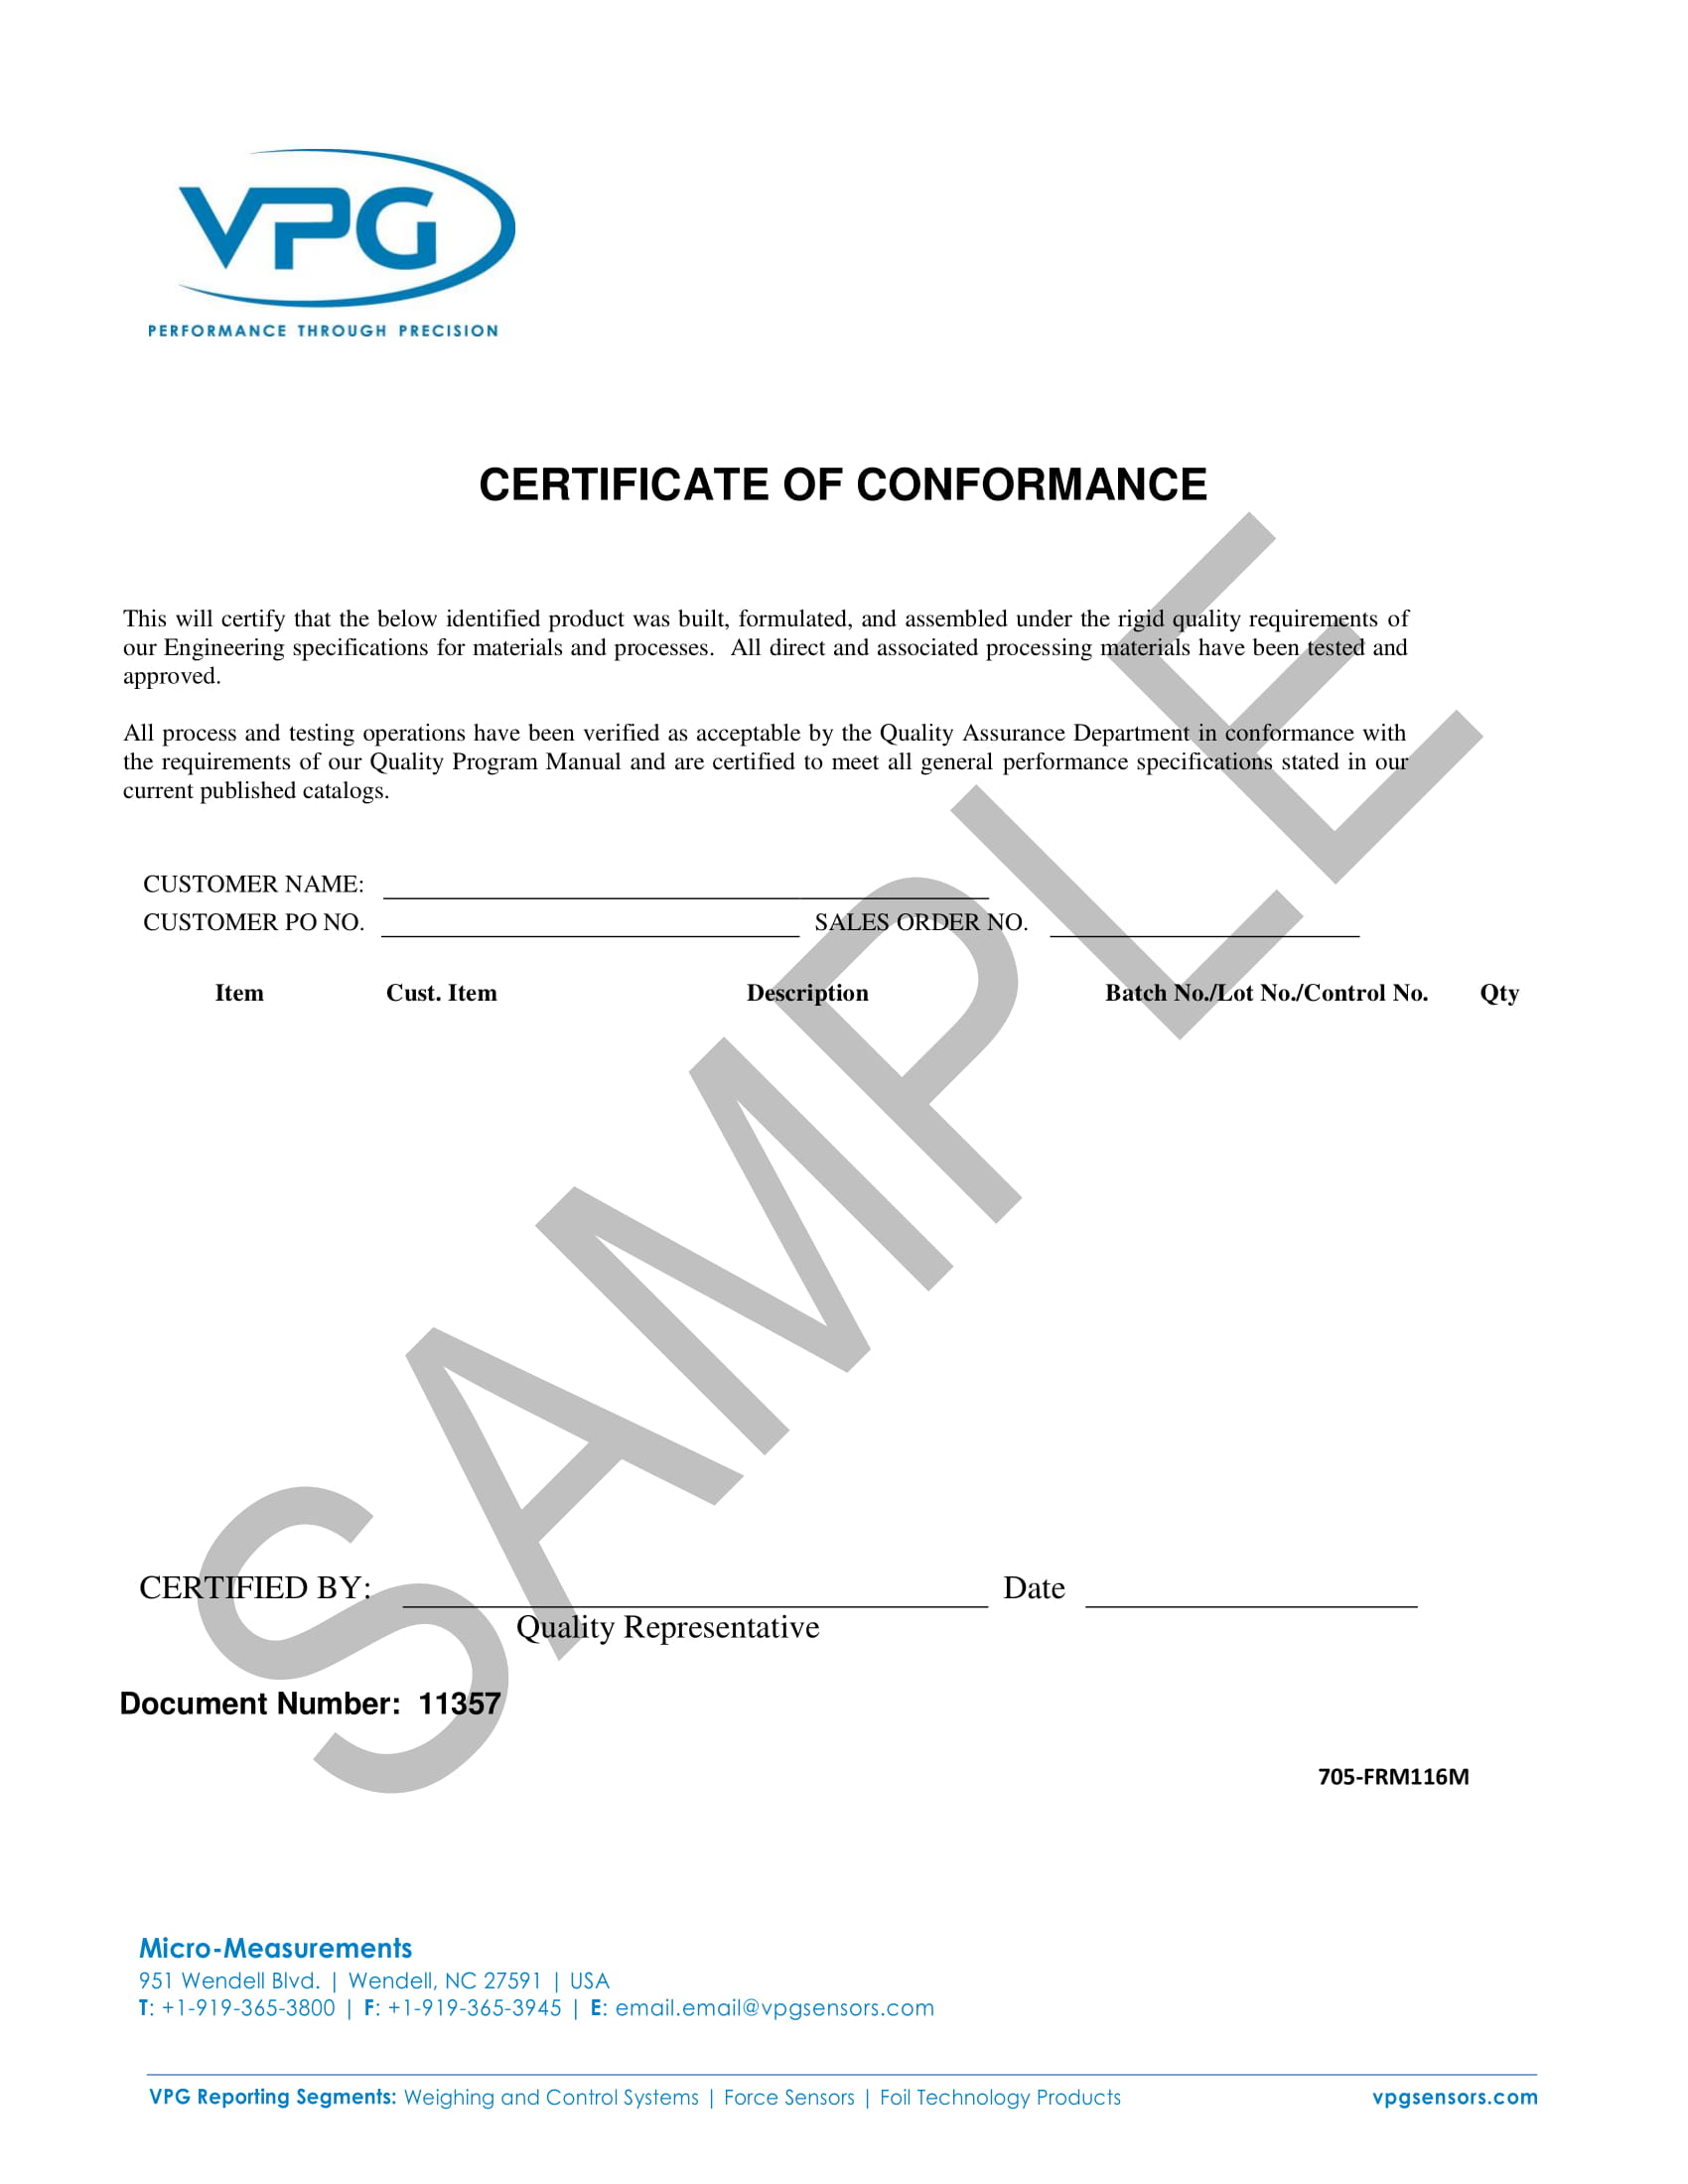 9 Certificate Of Conformance Examples Pdf